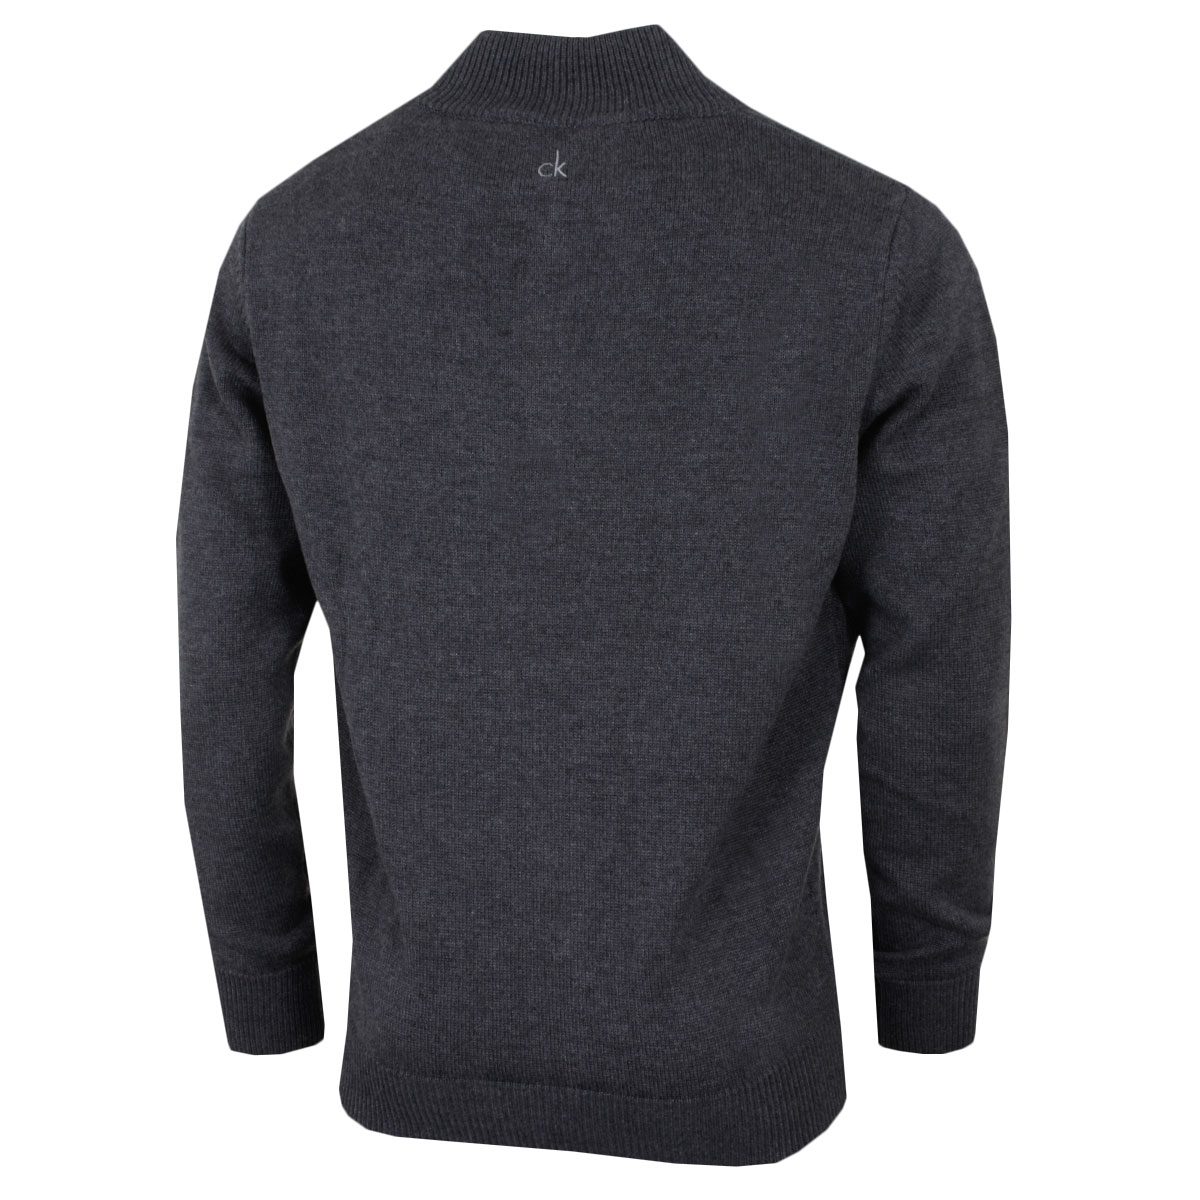 Calvin-Klein-Golf-Mens-2019-Chunky-Cotton-1-2-Zip-Golf-Top-Sweater-37-OFF-RRP thumbnail 21